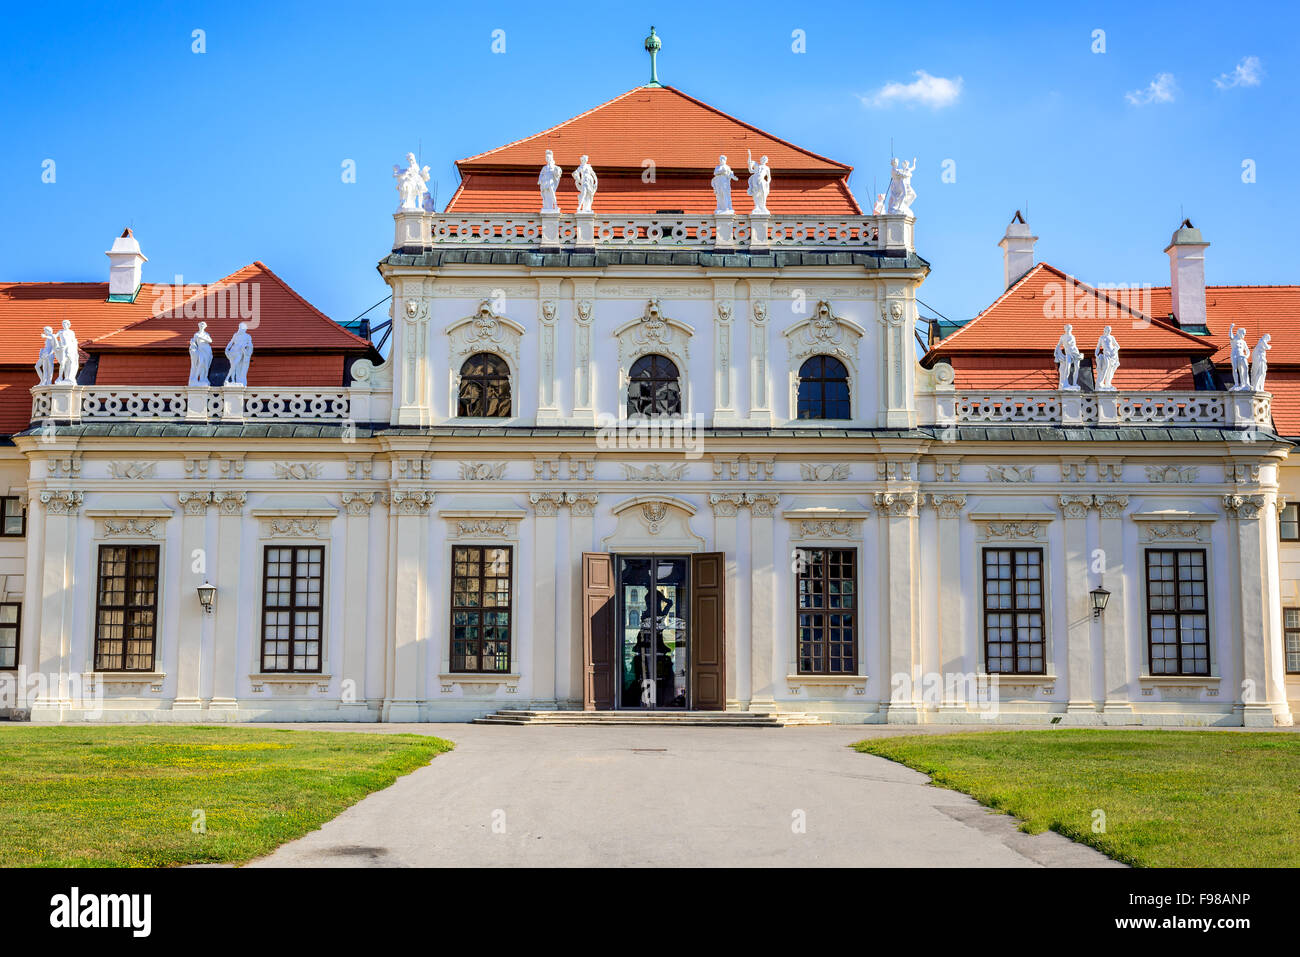 Vienna, Austria. Lower Belvedere Palace building. The Old Town is a UNESCO World Heritage Site. - Stock Image